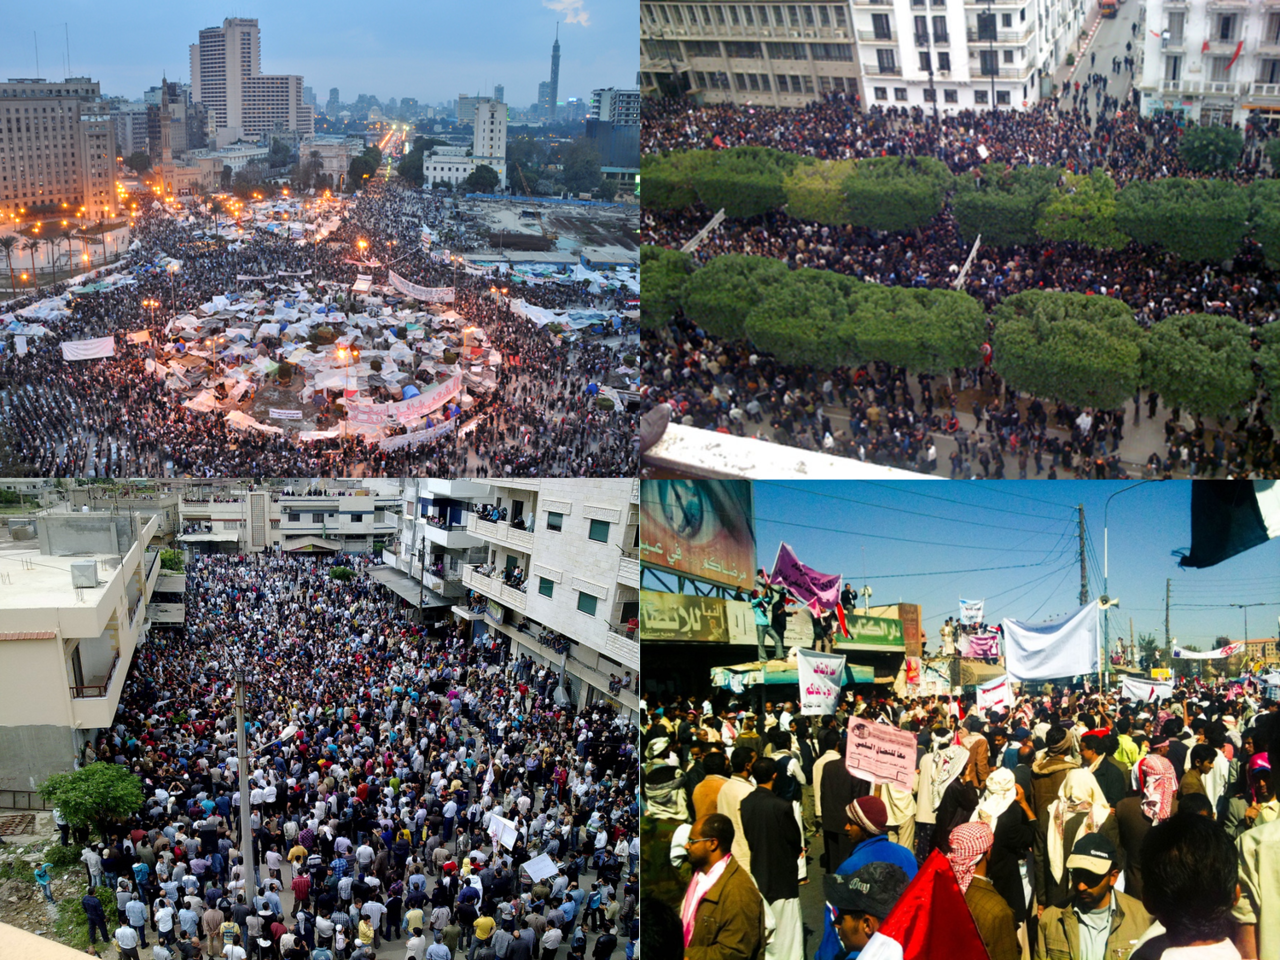 1280px-Infobox_collage_for_MENA_protests